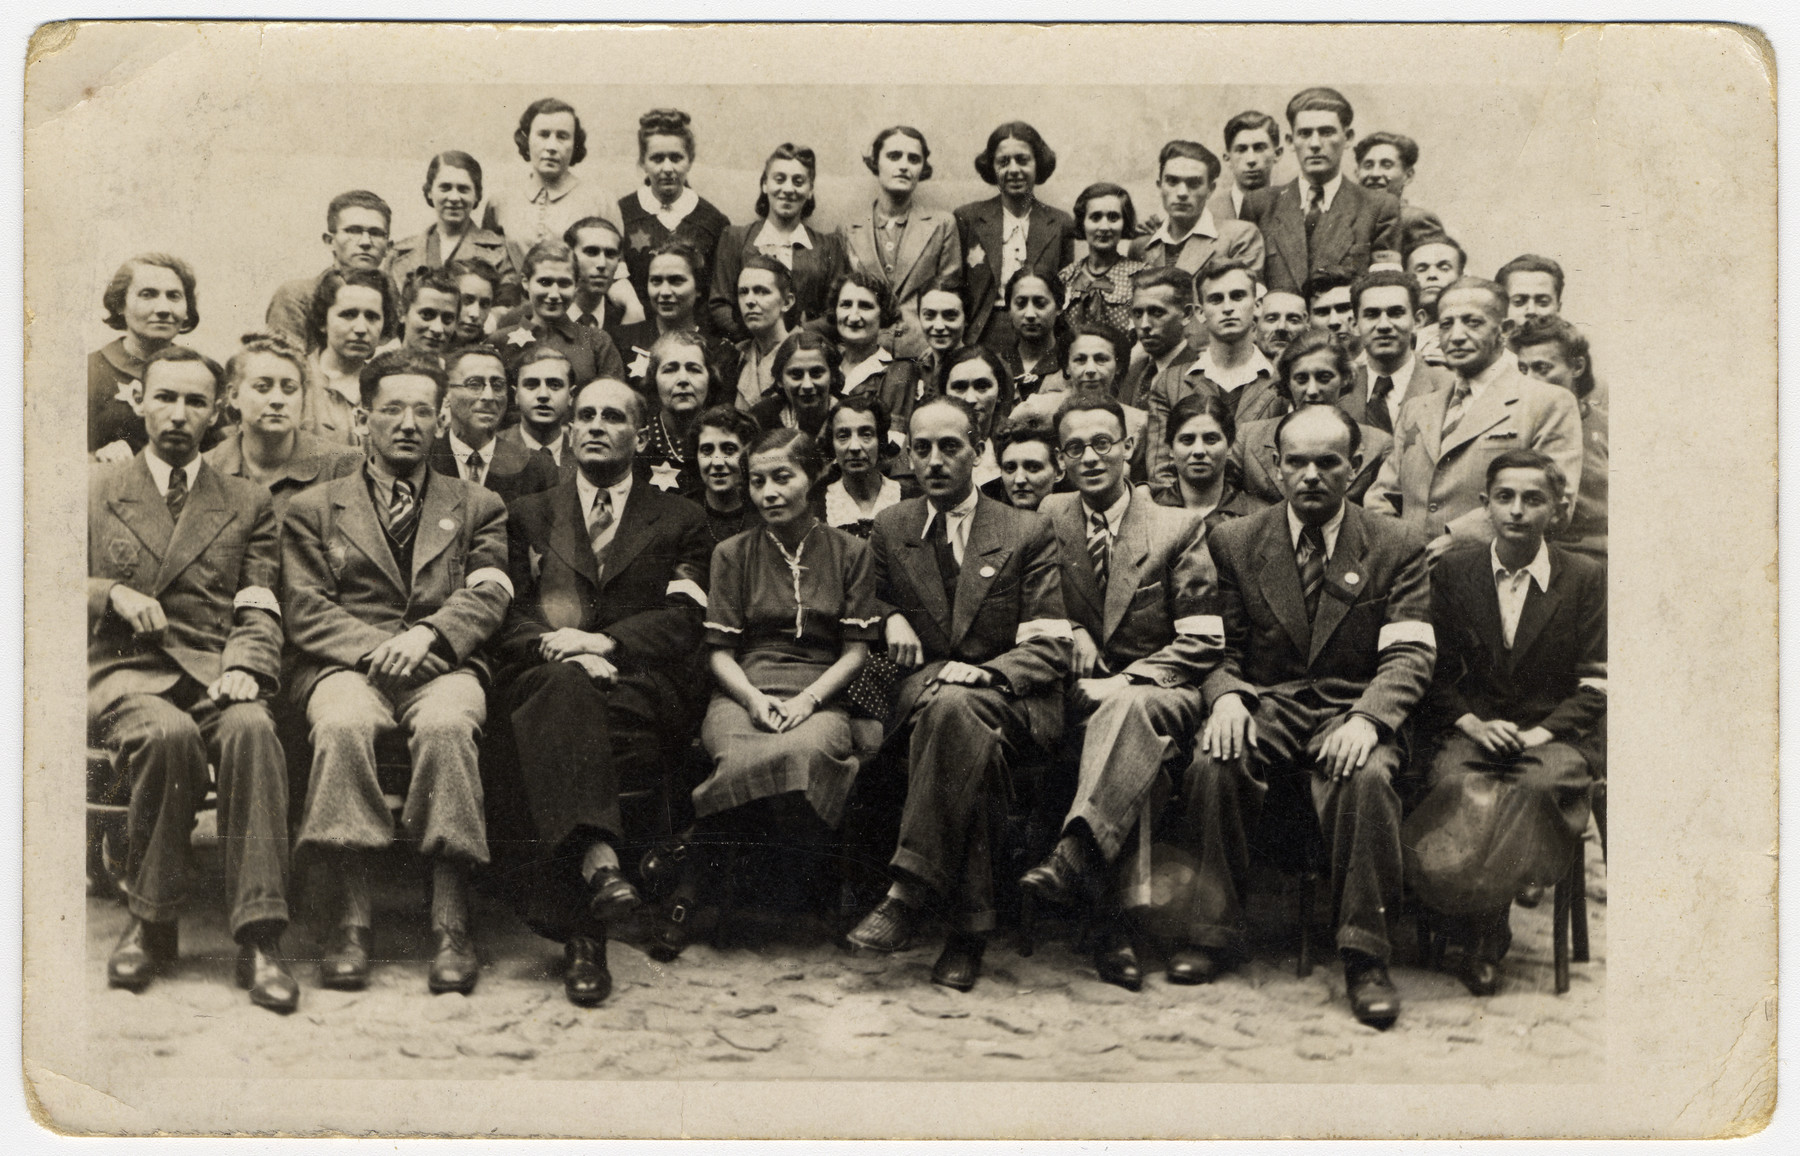 Group portrait of employees of the postal service in the Lodz ghetto.  Herbert Grabe, the head of the Post Office, is sitting third from the left in the front row.